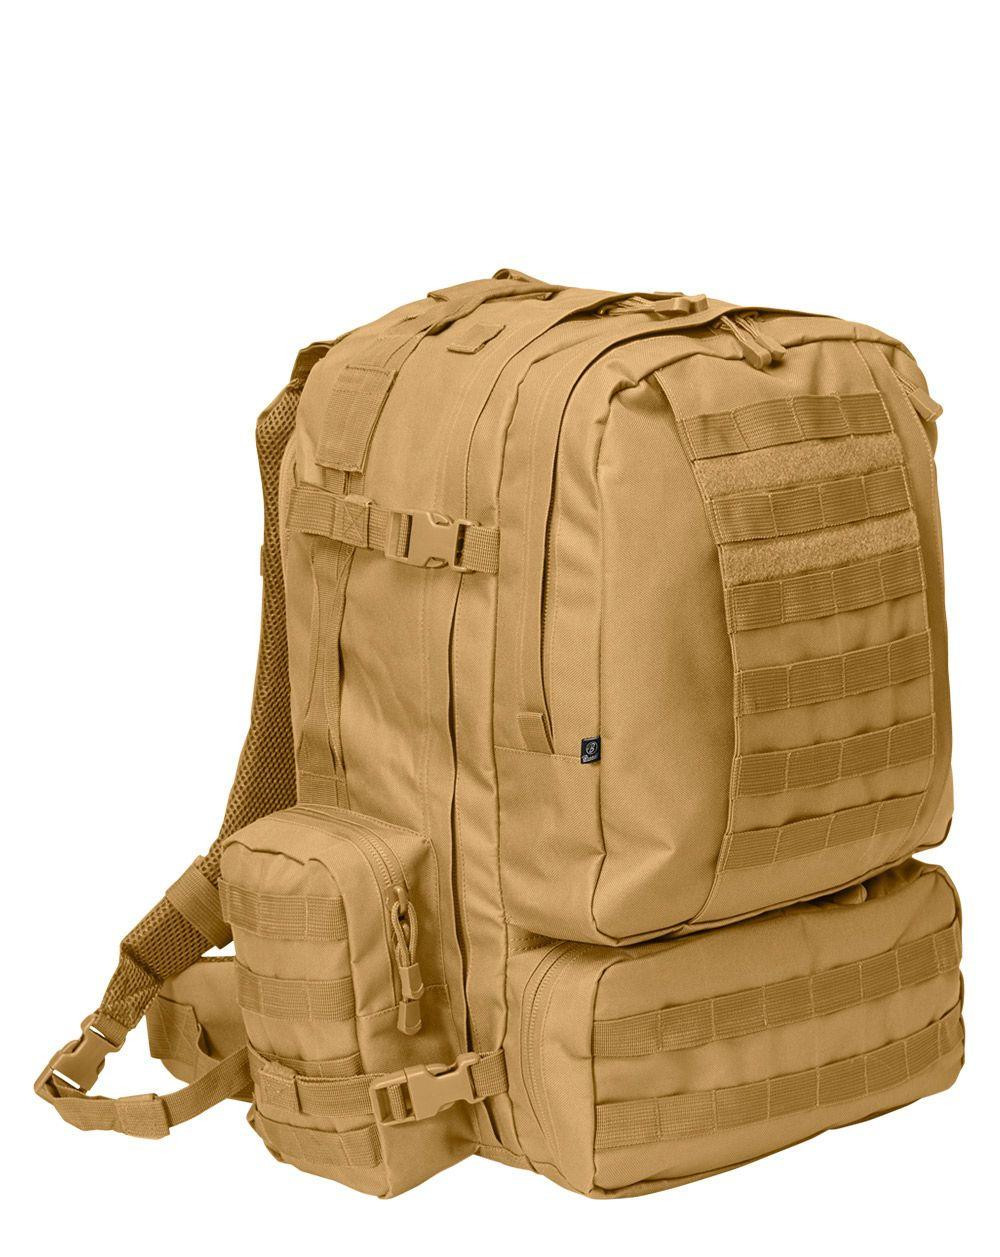 Image of   Brandit U.S. 3-Day Assault Rygsæk - 50 Liter (Coyote Brun, One Size)